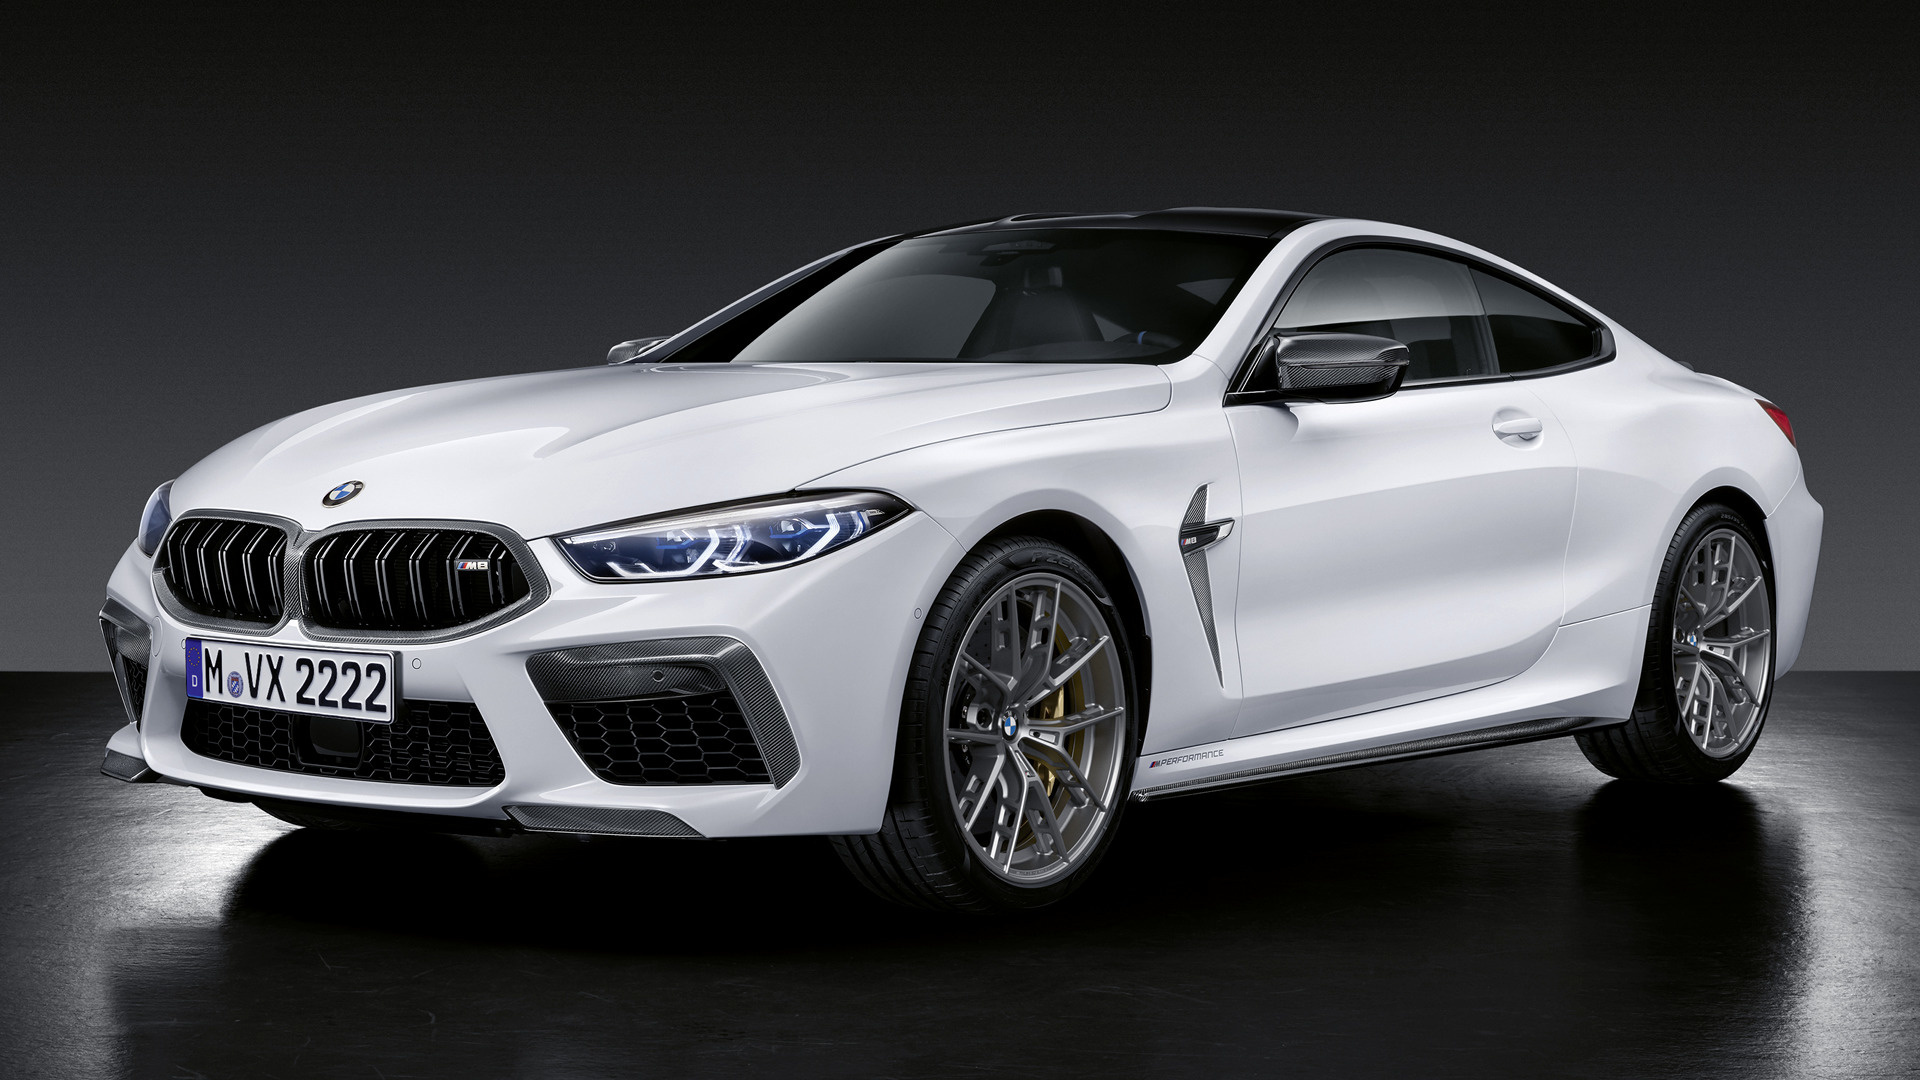 2019 Bmw M8 Coupe Competition With M Performance Parts